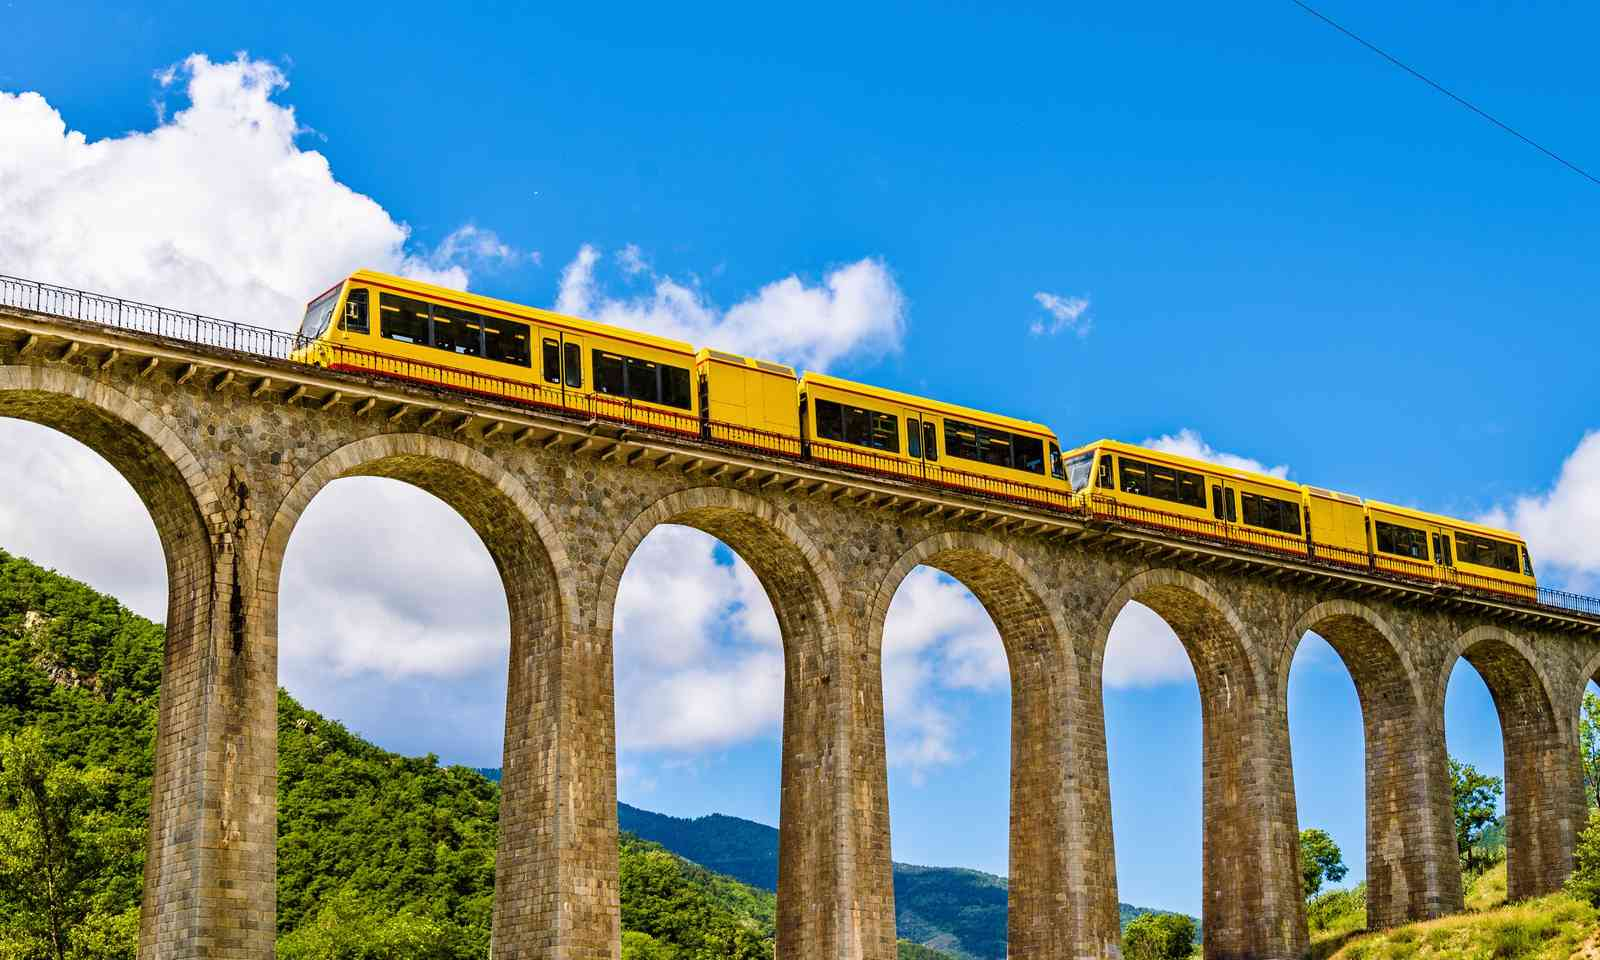 The Yellow Train on Sejourne Bridge (Dreamstime)